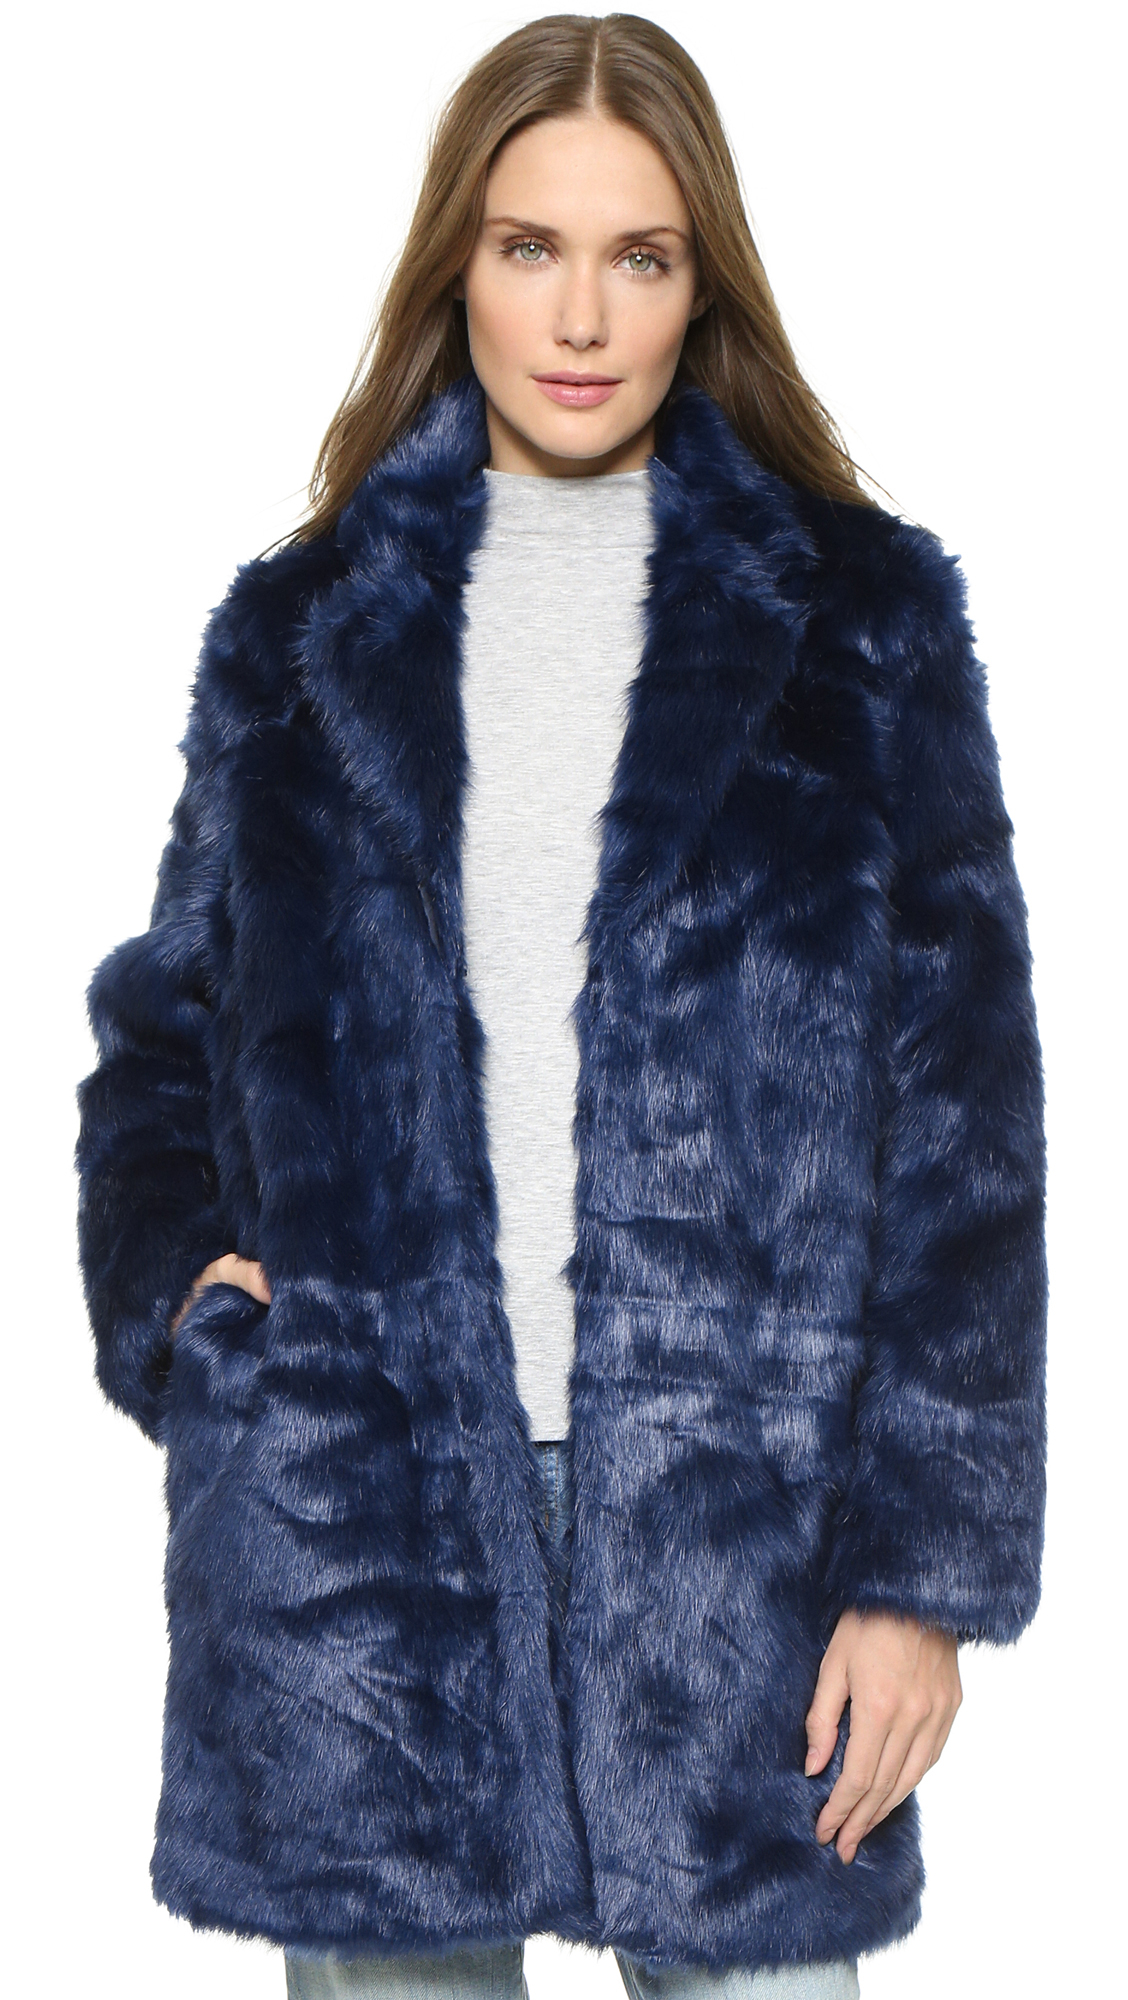 Blue Faux Fur Jacket ($ - $2,): 30 of items - Shop Blue Faux Fur Jacket from ALL your favorite stores & find HUGE SAVINGS up to 80% off Blue Faux Fur Jacket, including GREAT DEALS like Tivoli Quilted-puffer Long Jacket W/ Faux Fur - Blue - Sorel Jackets ($).